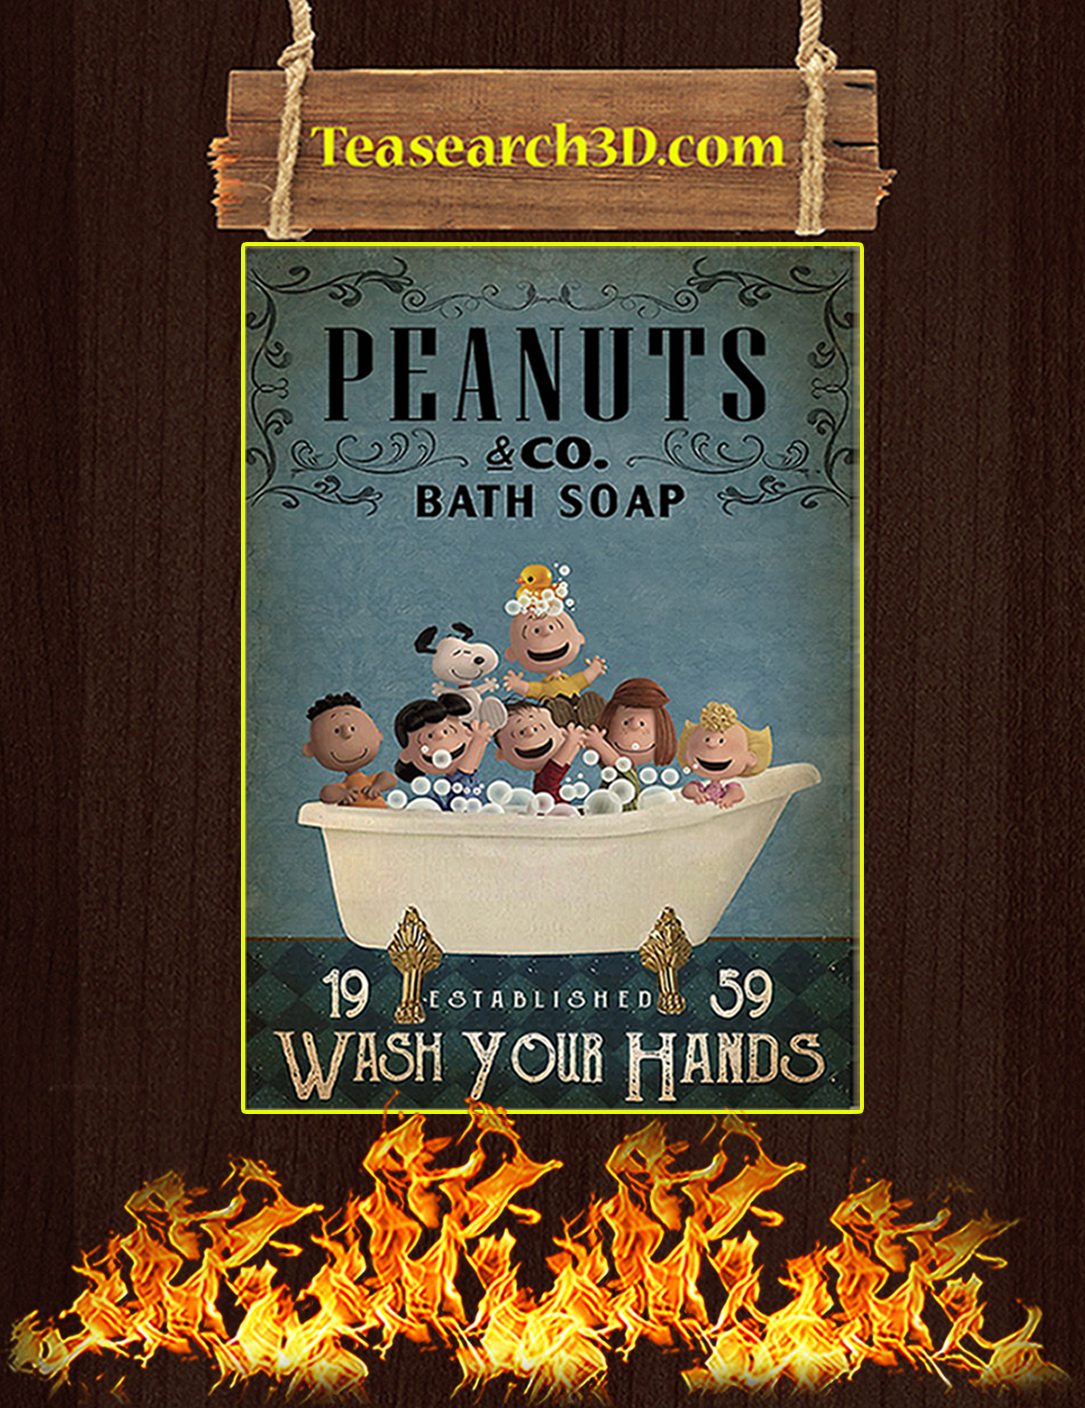 Peanuts co bath soap wash your hands poster A2